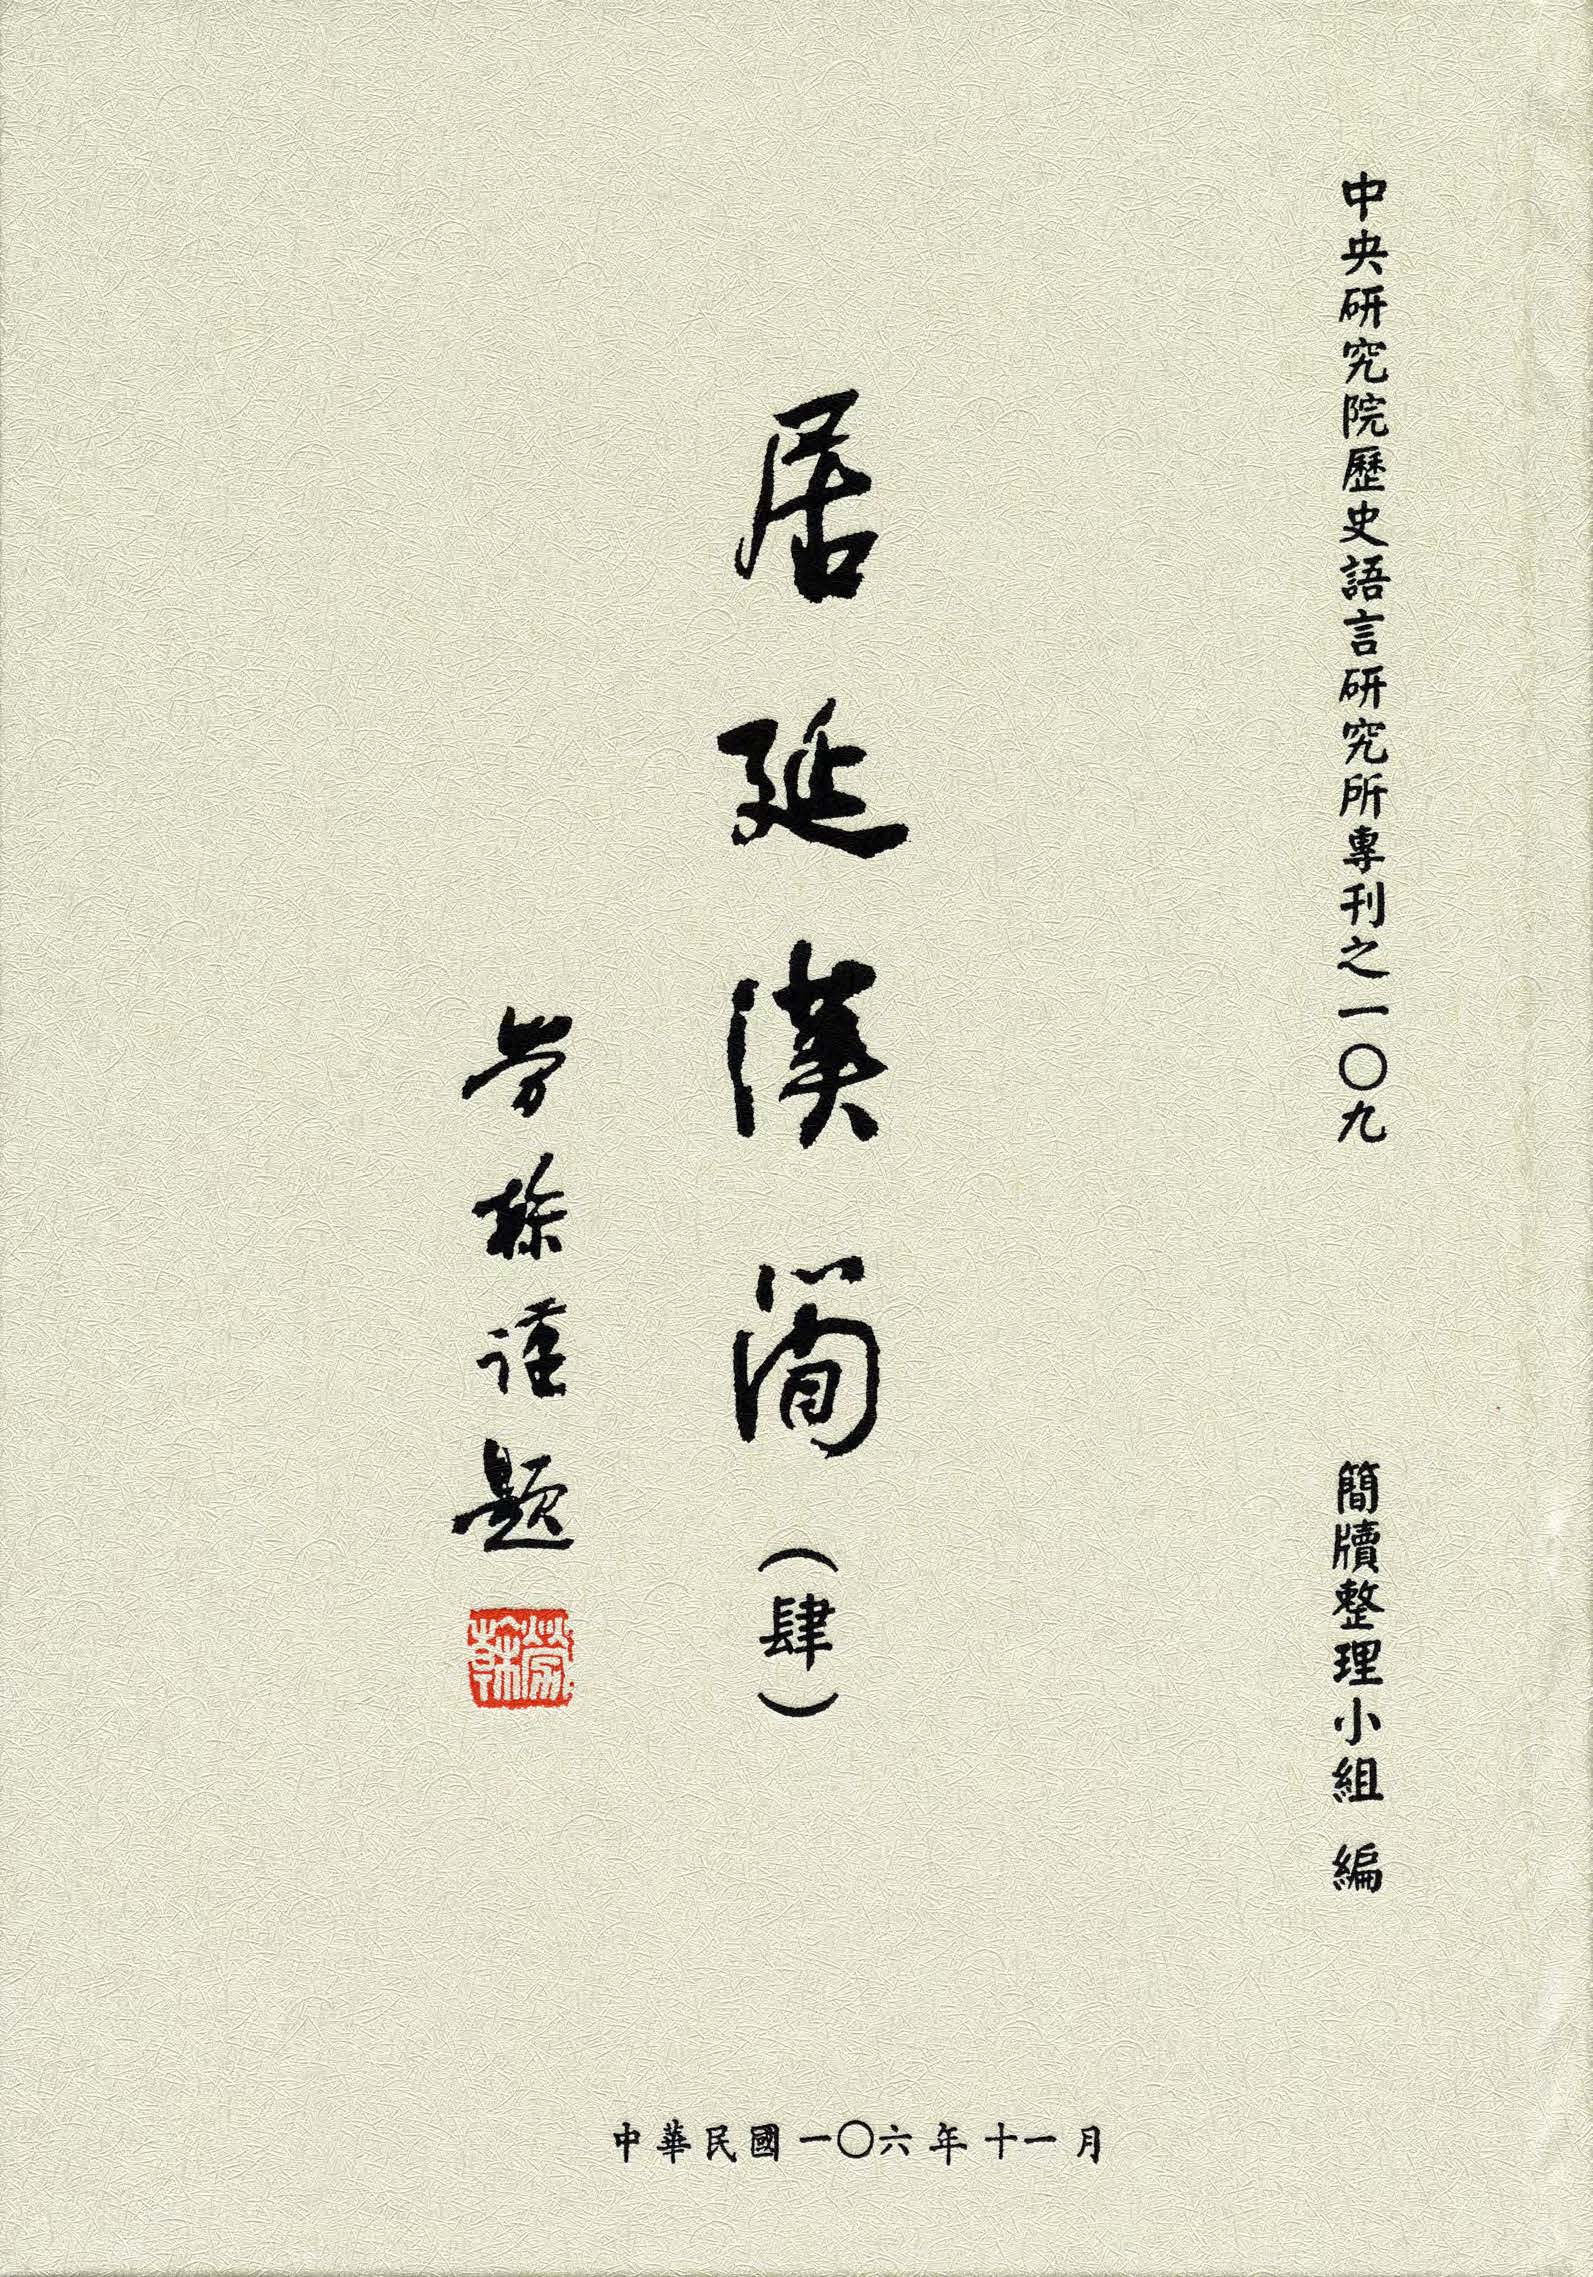 The Documents of the Han Dynasty on Wooden Slips from Edsen-Gol (Volume IV)